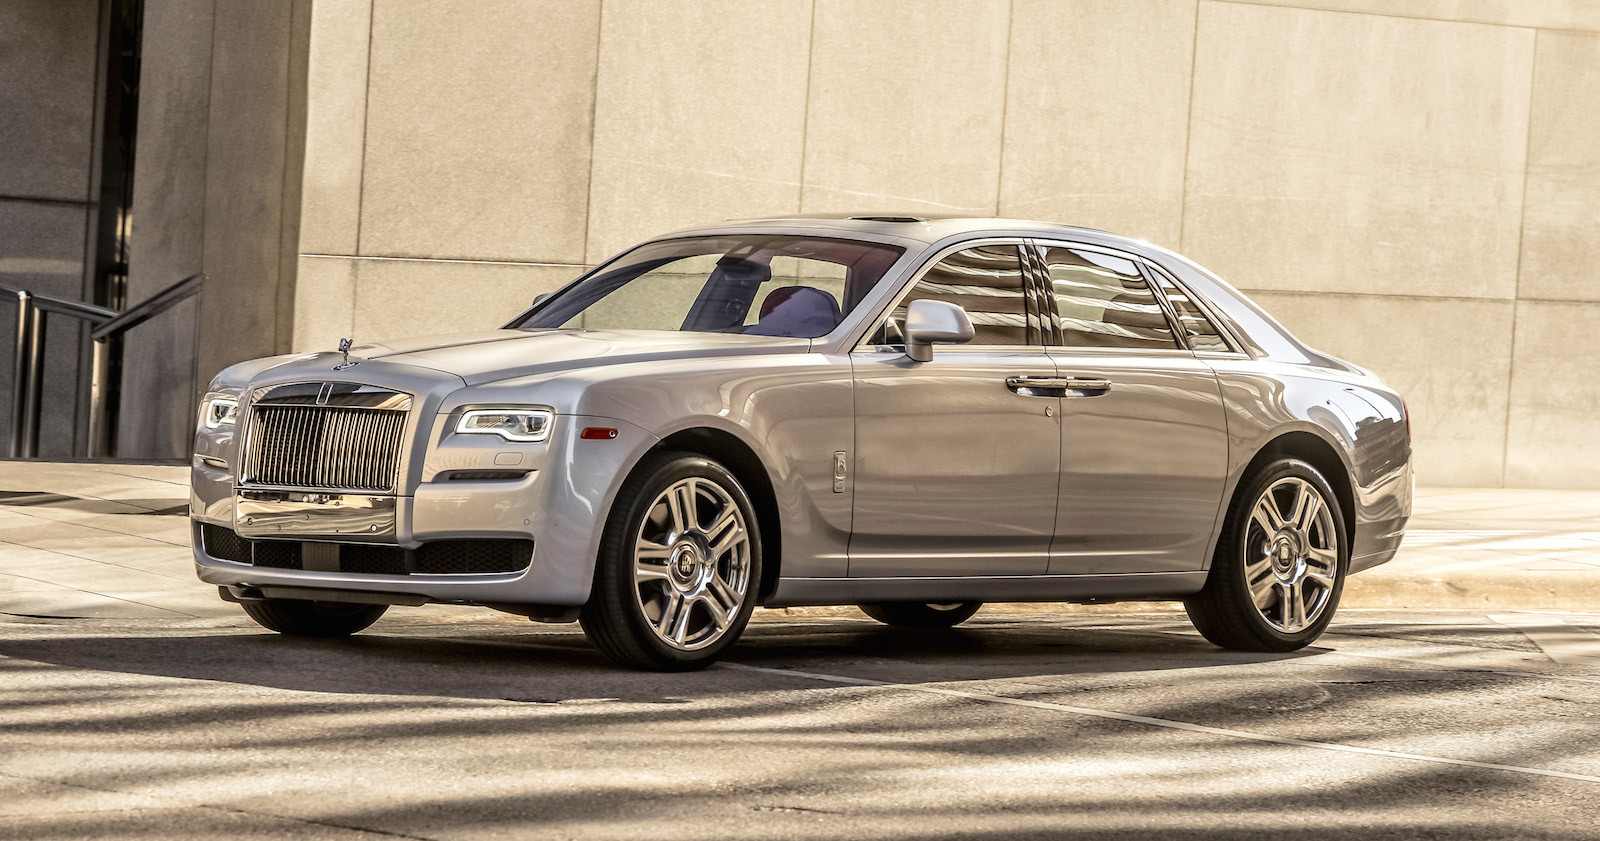 Find new 2015 rolls royce usa cars reviews and model on for Rolls royce motor cars